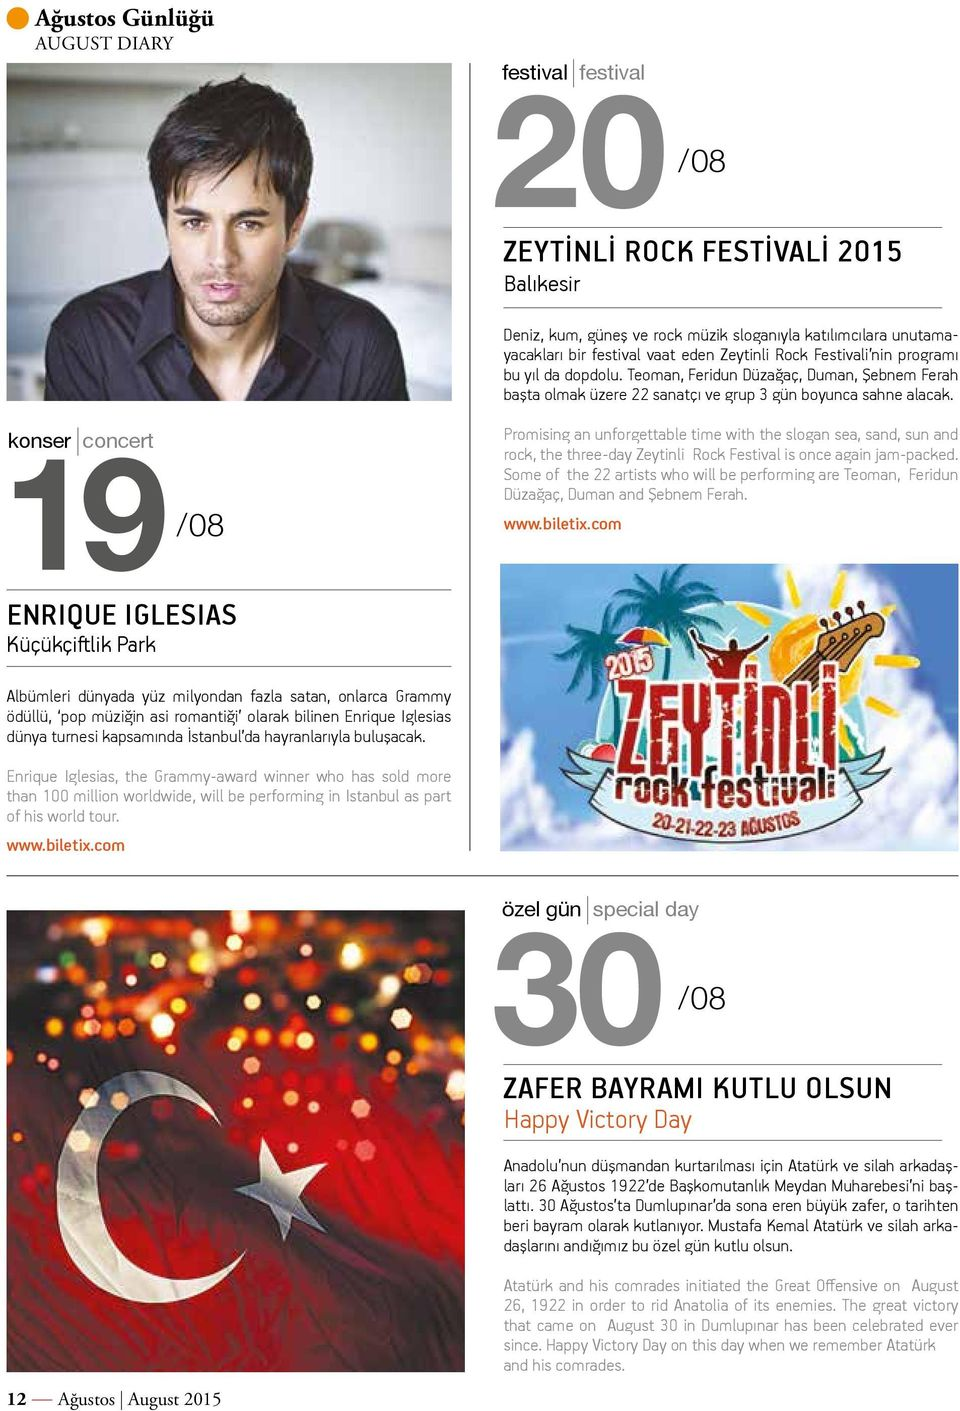 konser concert 19/08 ENRIQUE IGLESIAS Küçükçiftlik Park Promising an unforgettable time with the slogan sea, sand, sun and rock, the three-day Zeytinli Rock Festival is once again jam-packed.